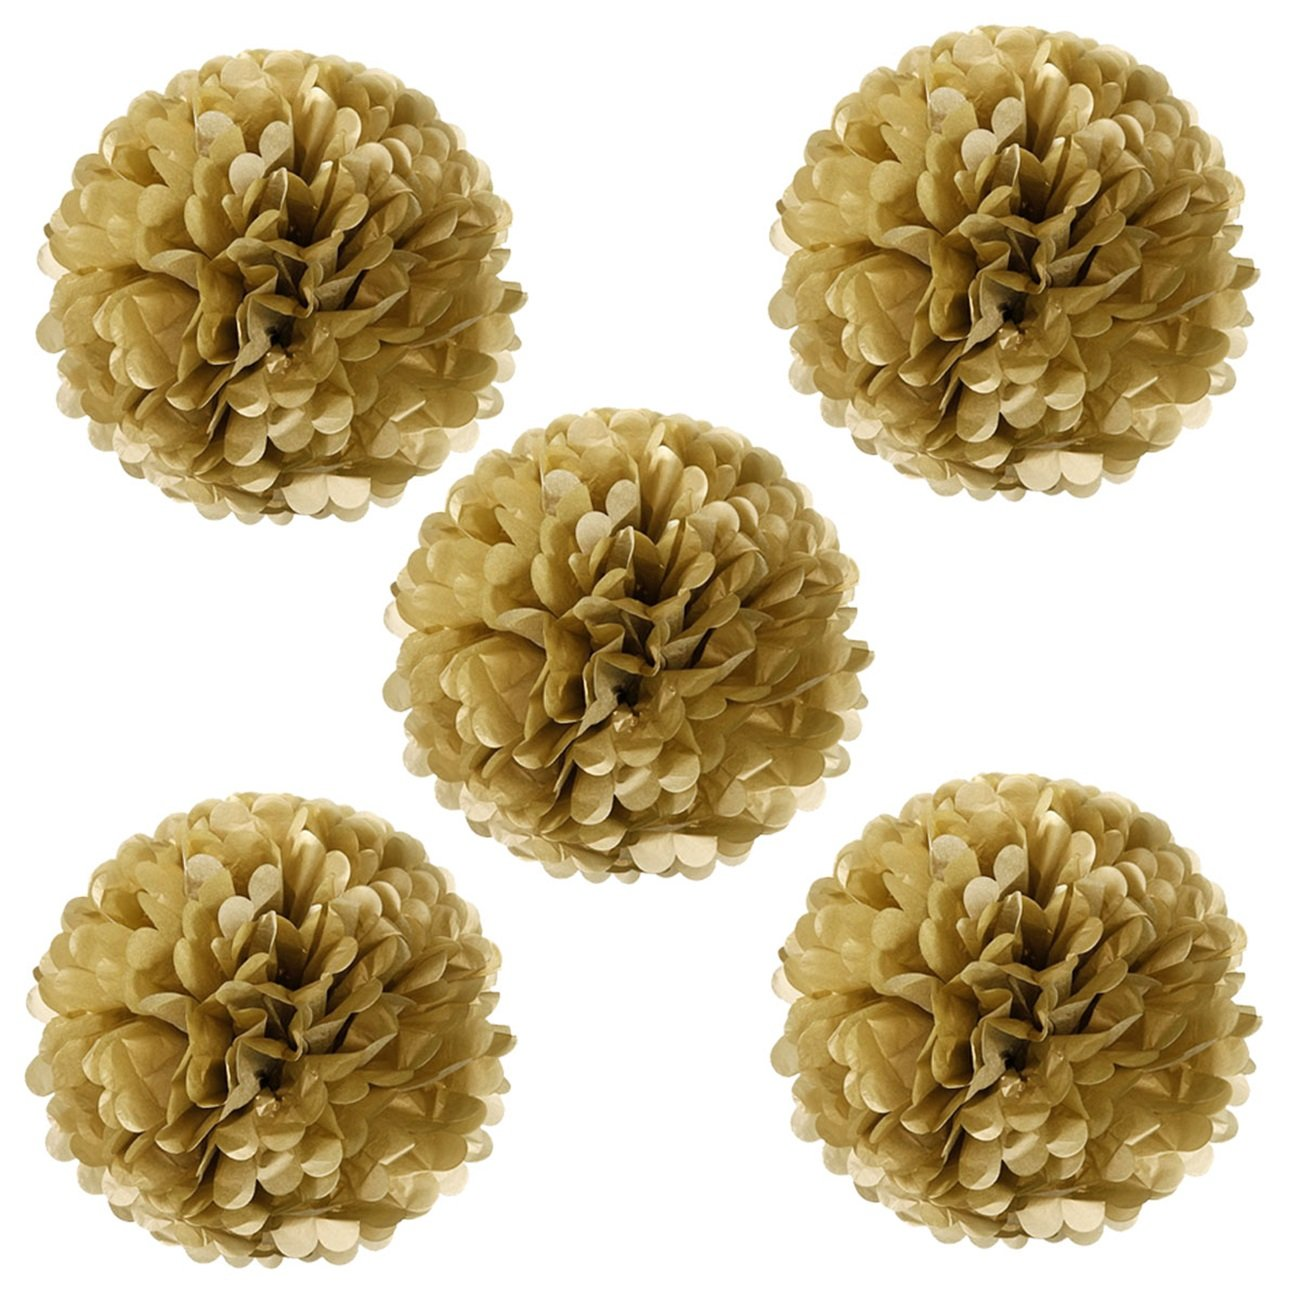 Amazon.com: Wrapables Tissue Pom Poms Party Decorations for Weddings ...